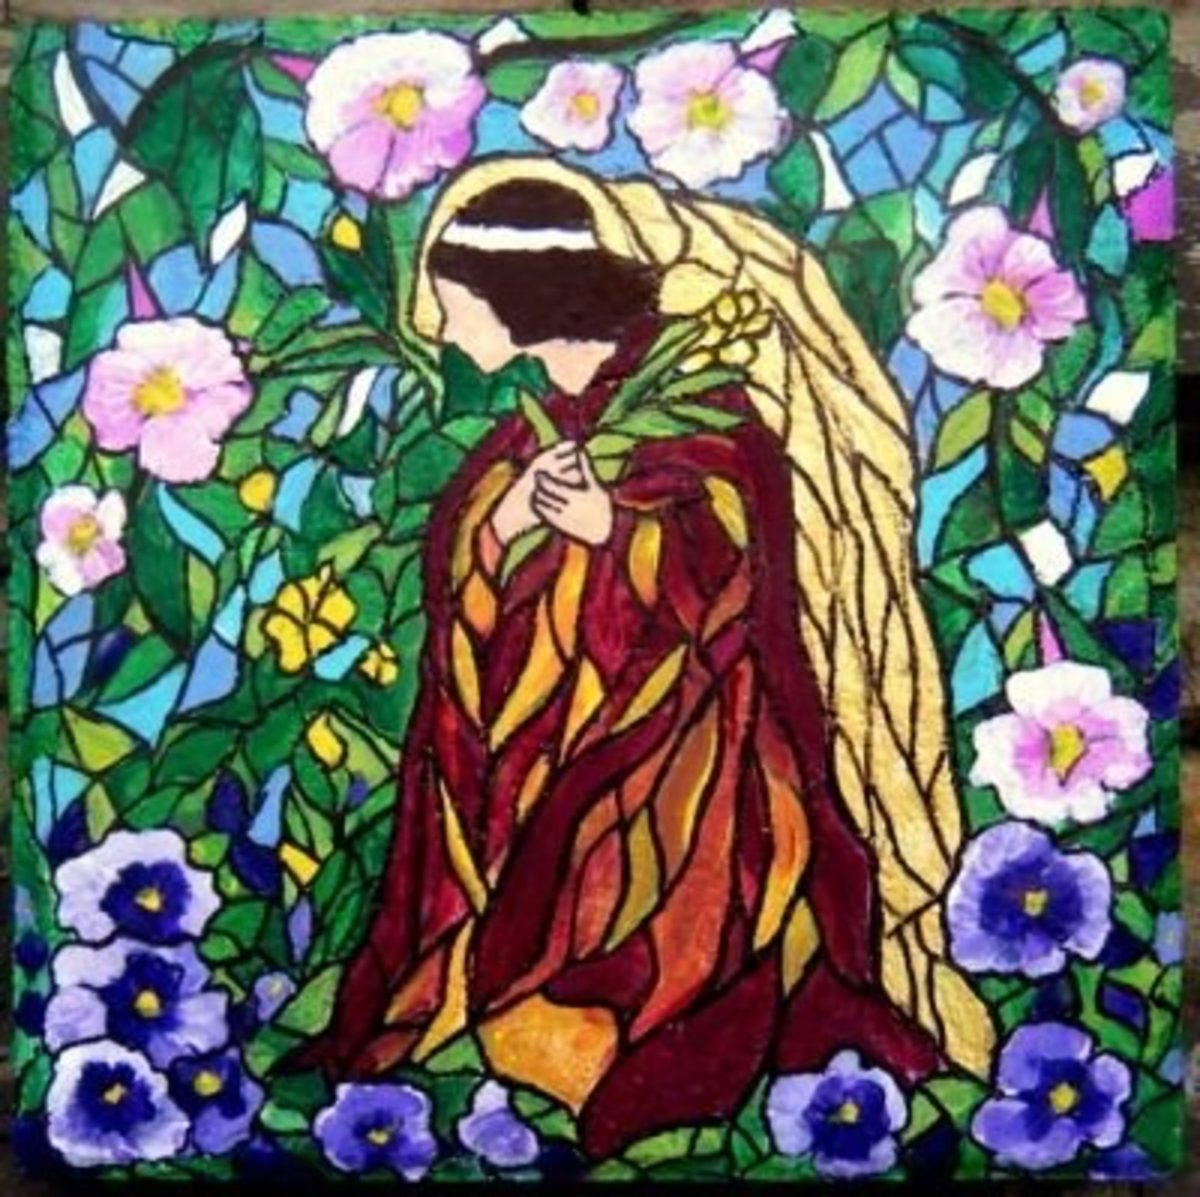 Stained Glass Theme Angel Stepping Stone - by Maggie Lee Flower Creations